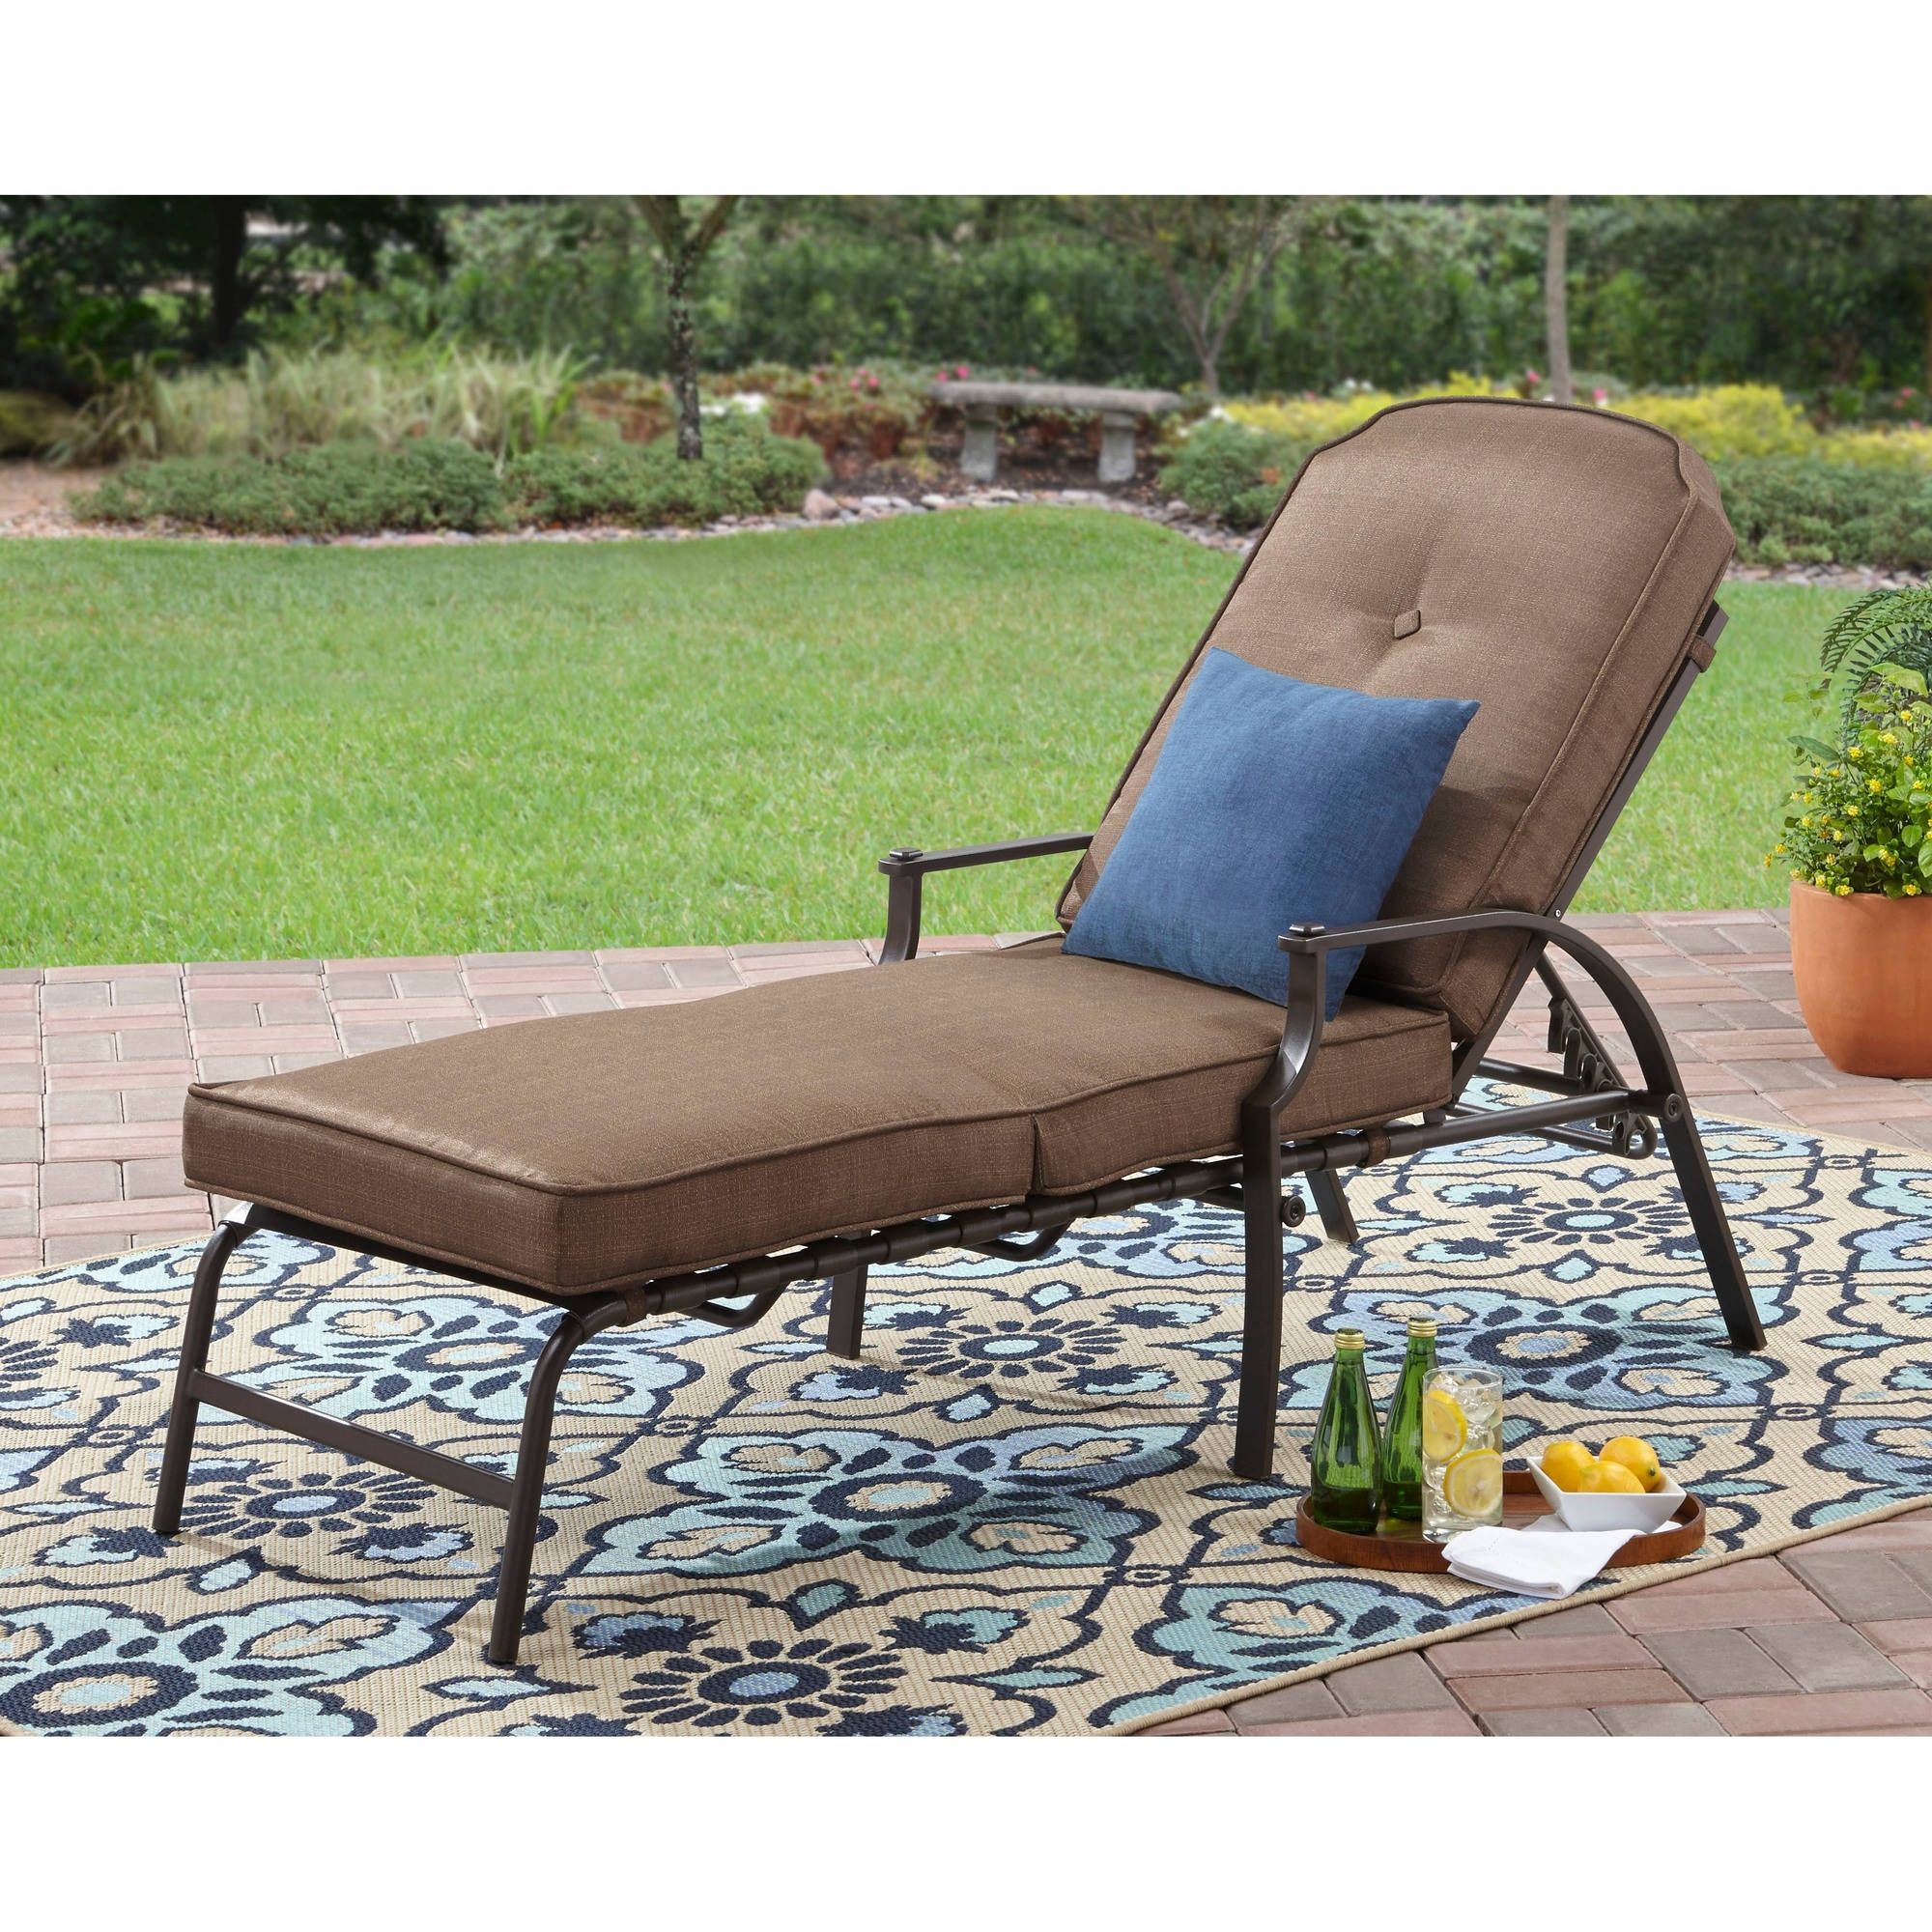 Vinyl Outdoor Chaise Lounge Chairs In Most Up To Date Mainstays Wentworth Chaise Lounge – Walmart (View 15 of 15)